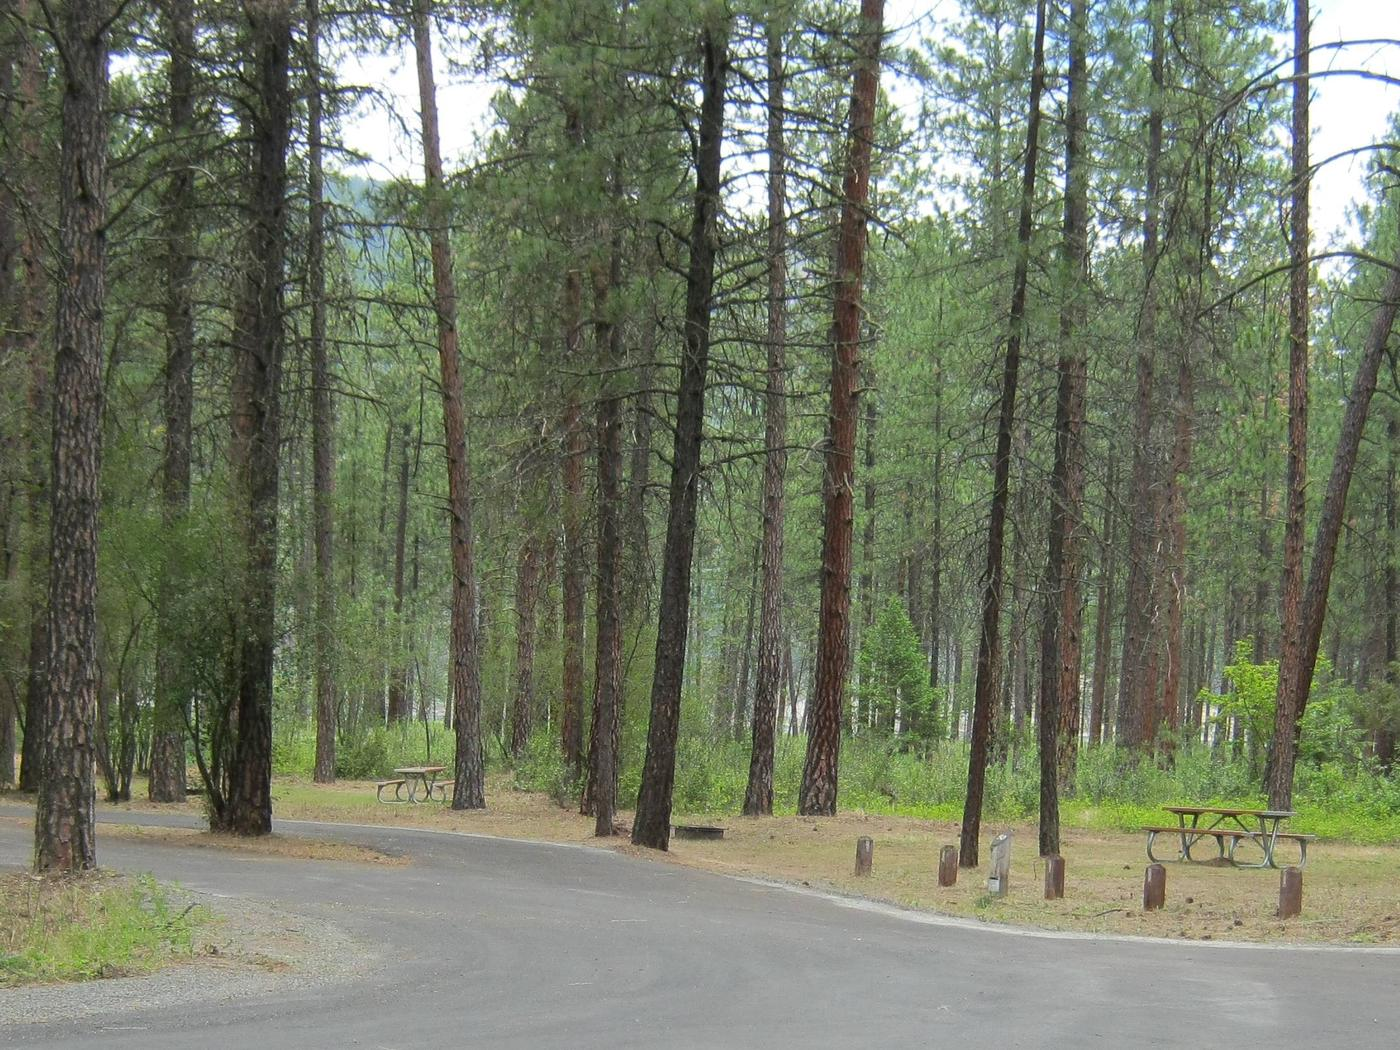 Pine trees in the back dropPull Through paved parking